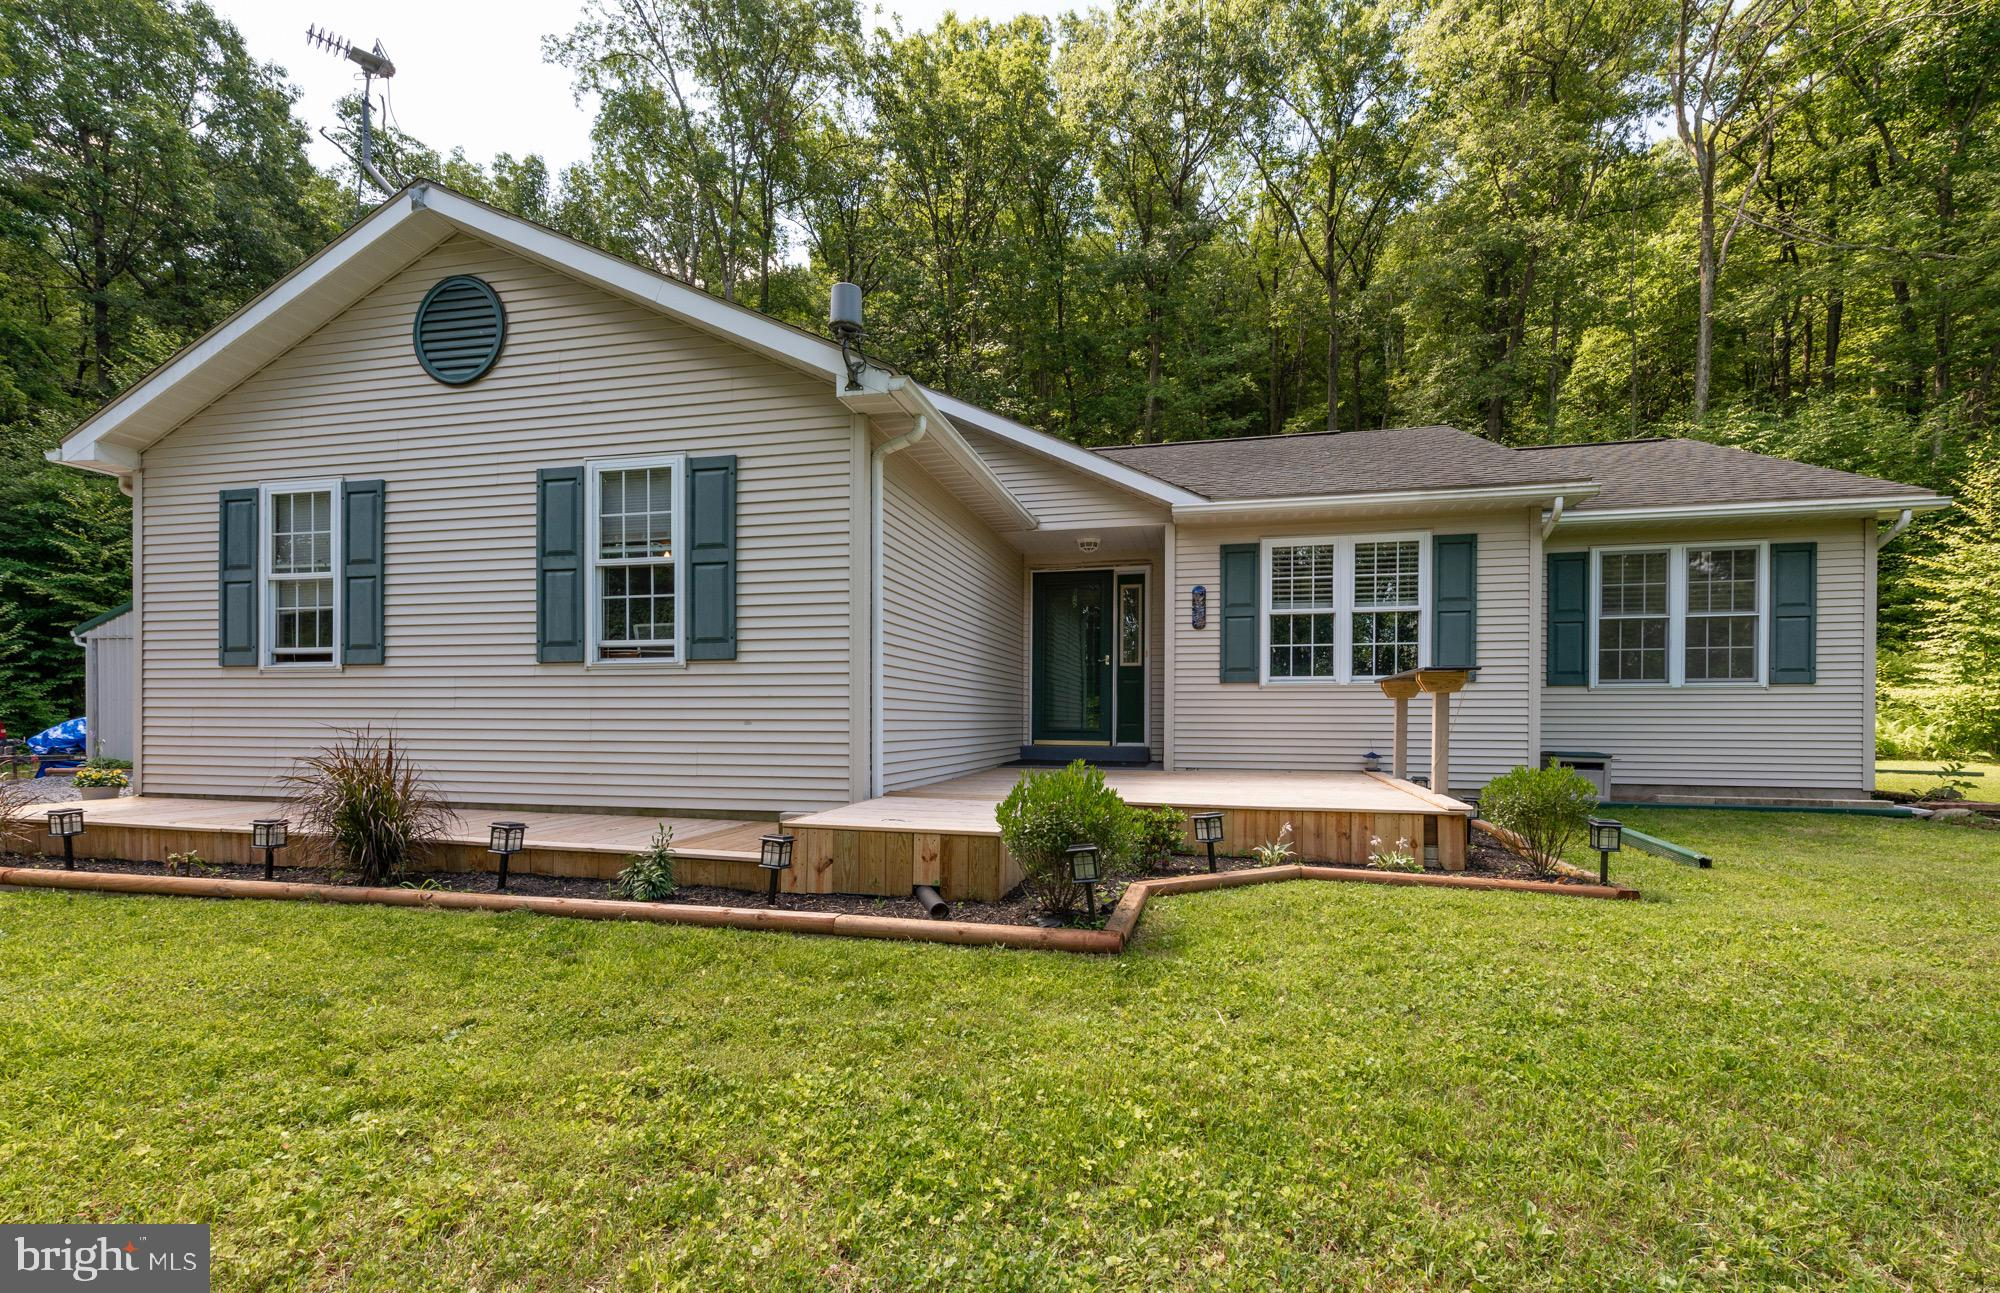 81 MOUNTAIN SIDE LN, CATAWISSA, PA 17820